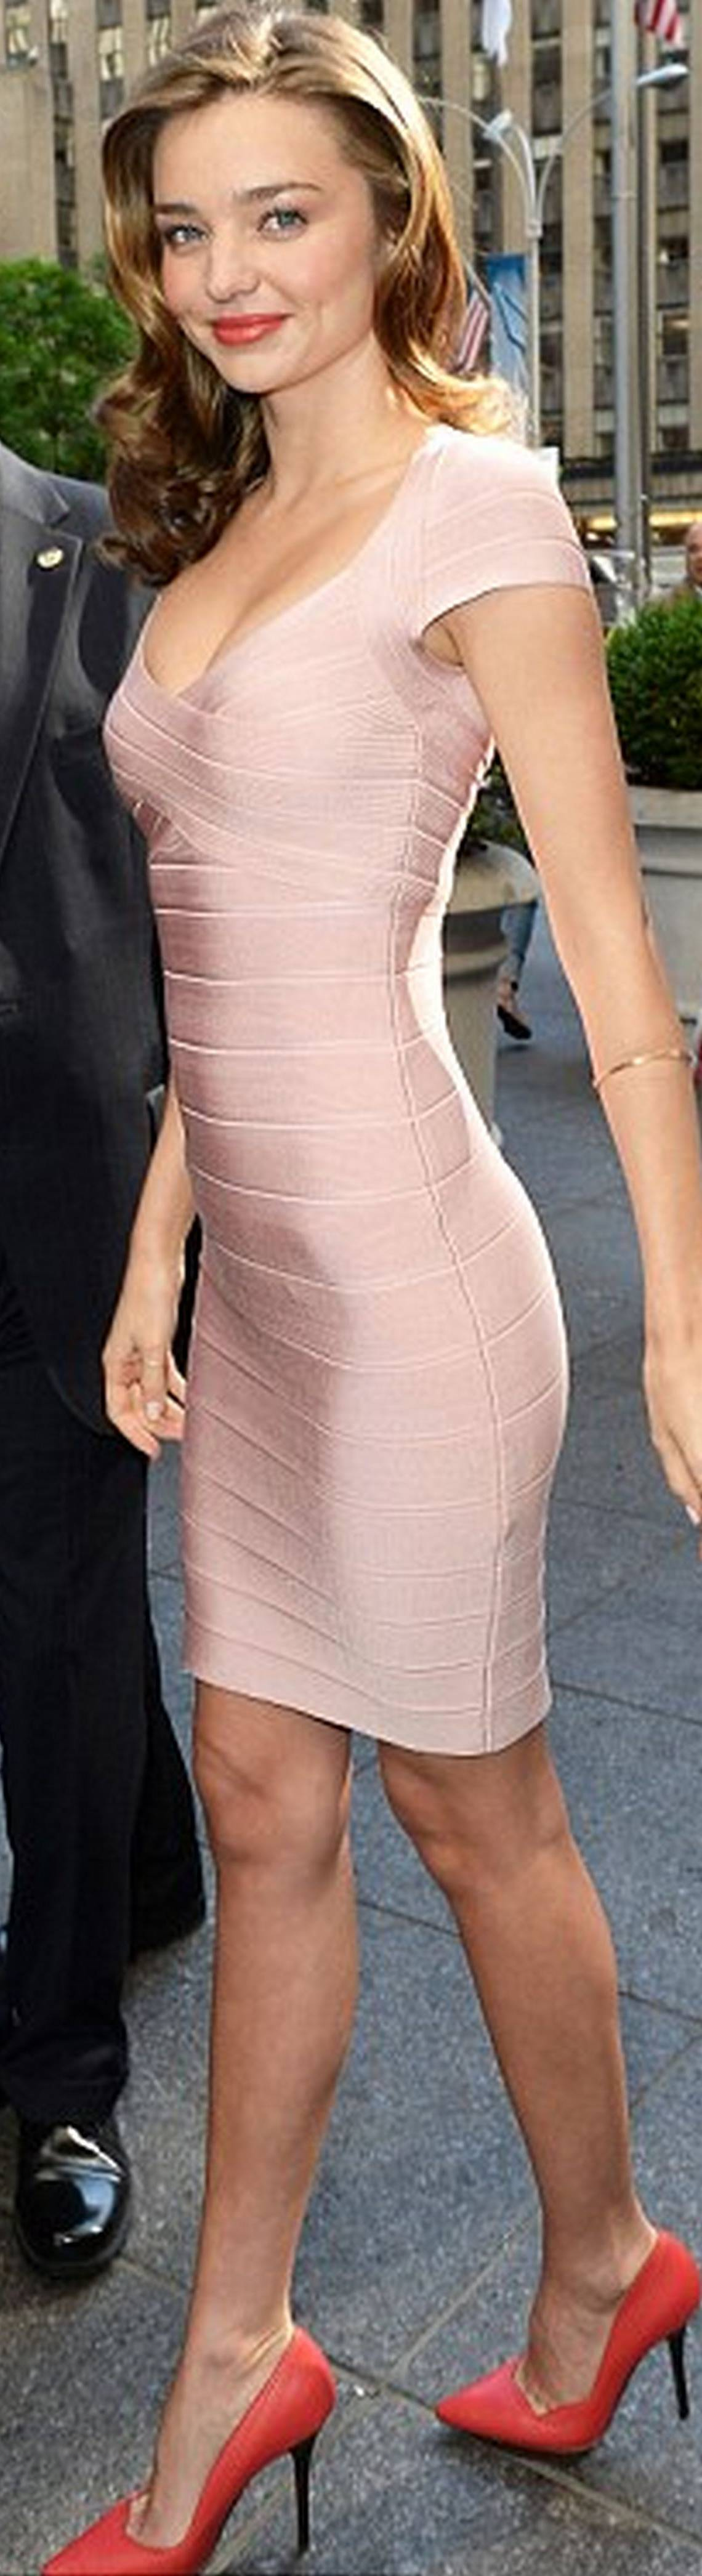 Pink sleeve dress idea for daily action 41 fashion